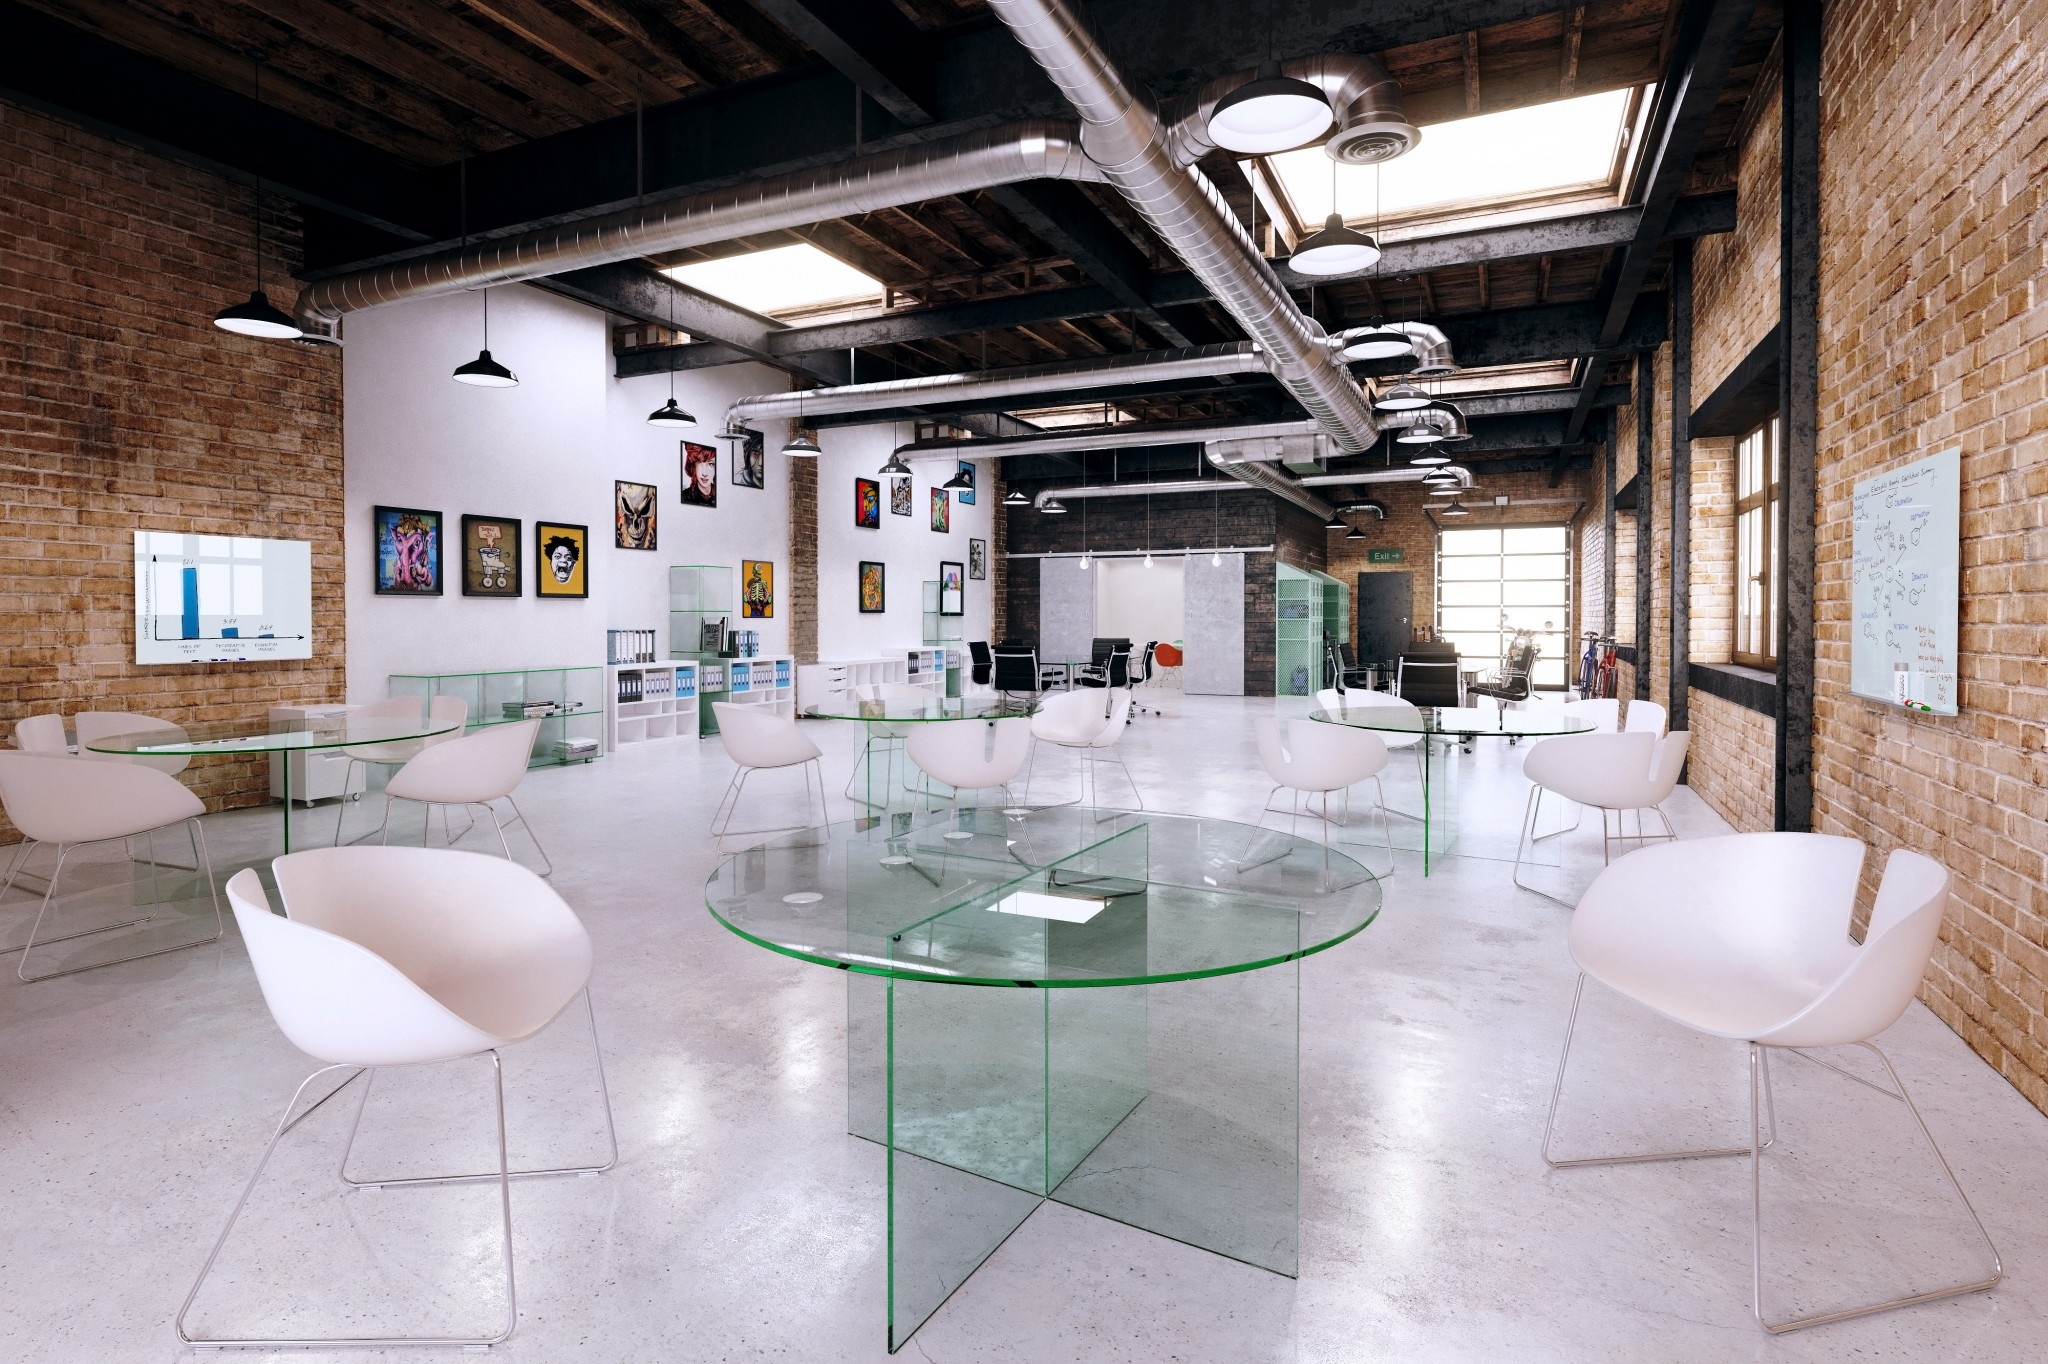 7 ways bespoke glass furniture can improve your office Bespoke glass furniture